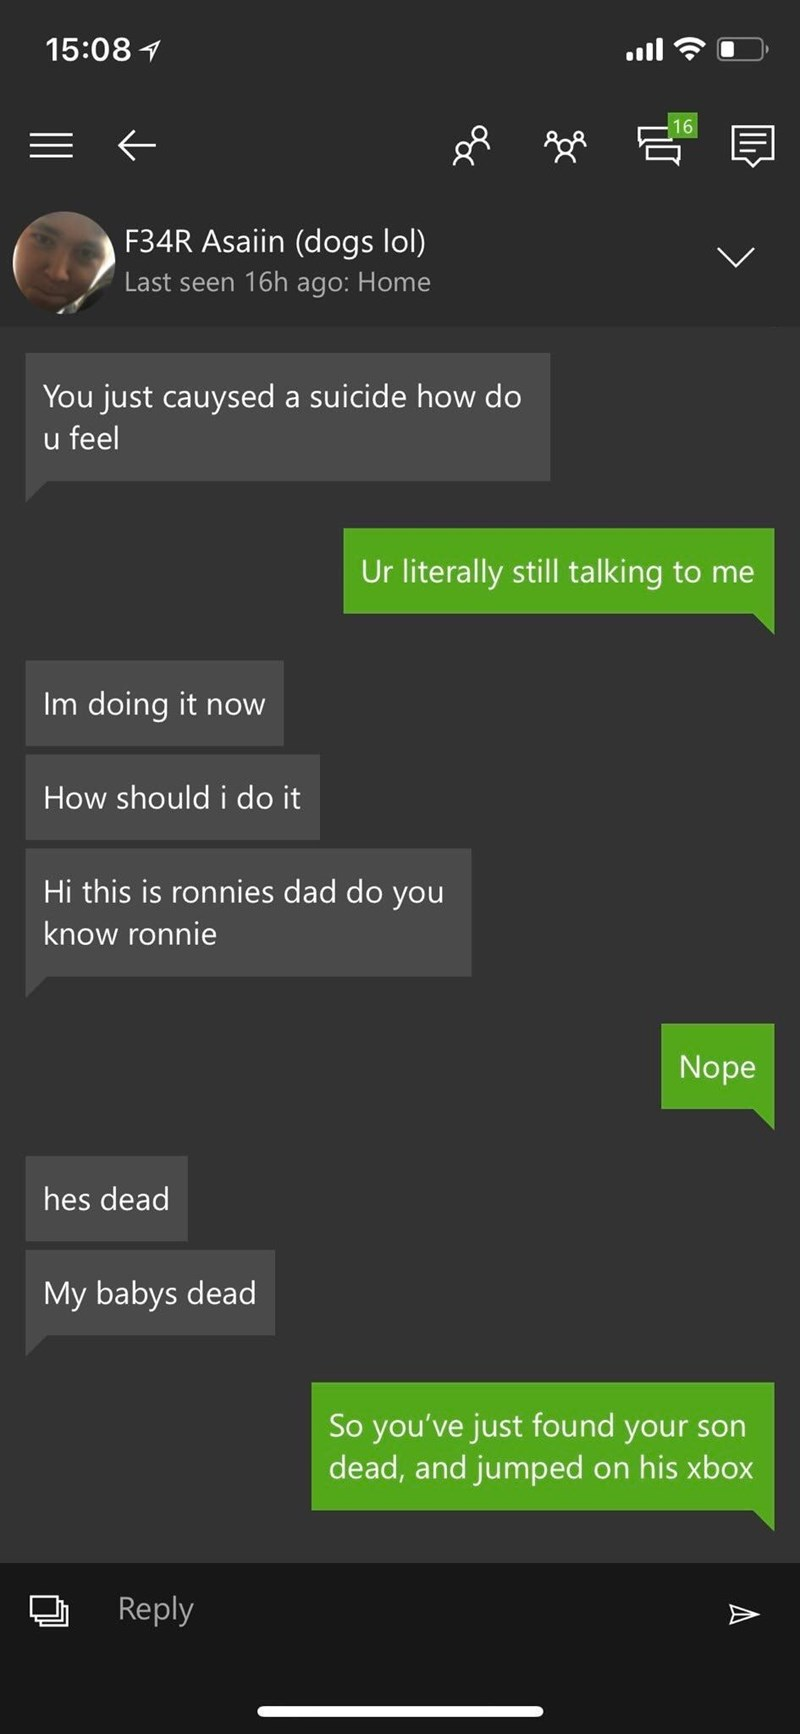 text message about a dad finding out his son is dead and going on his xbox right after